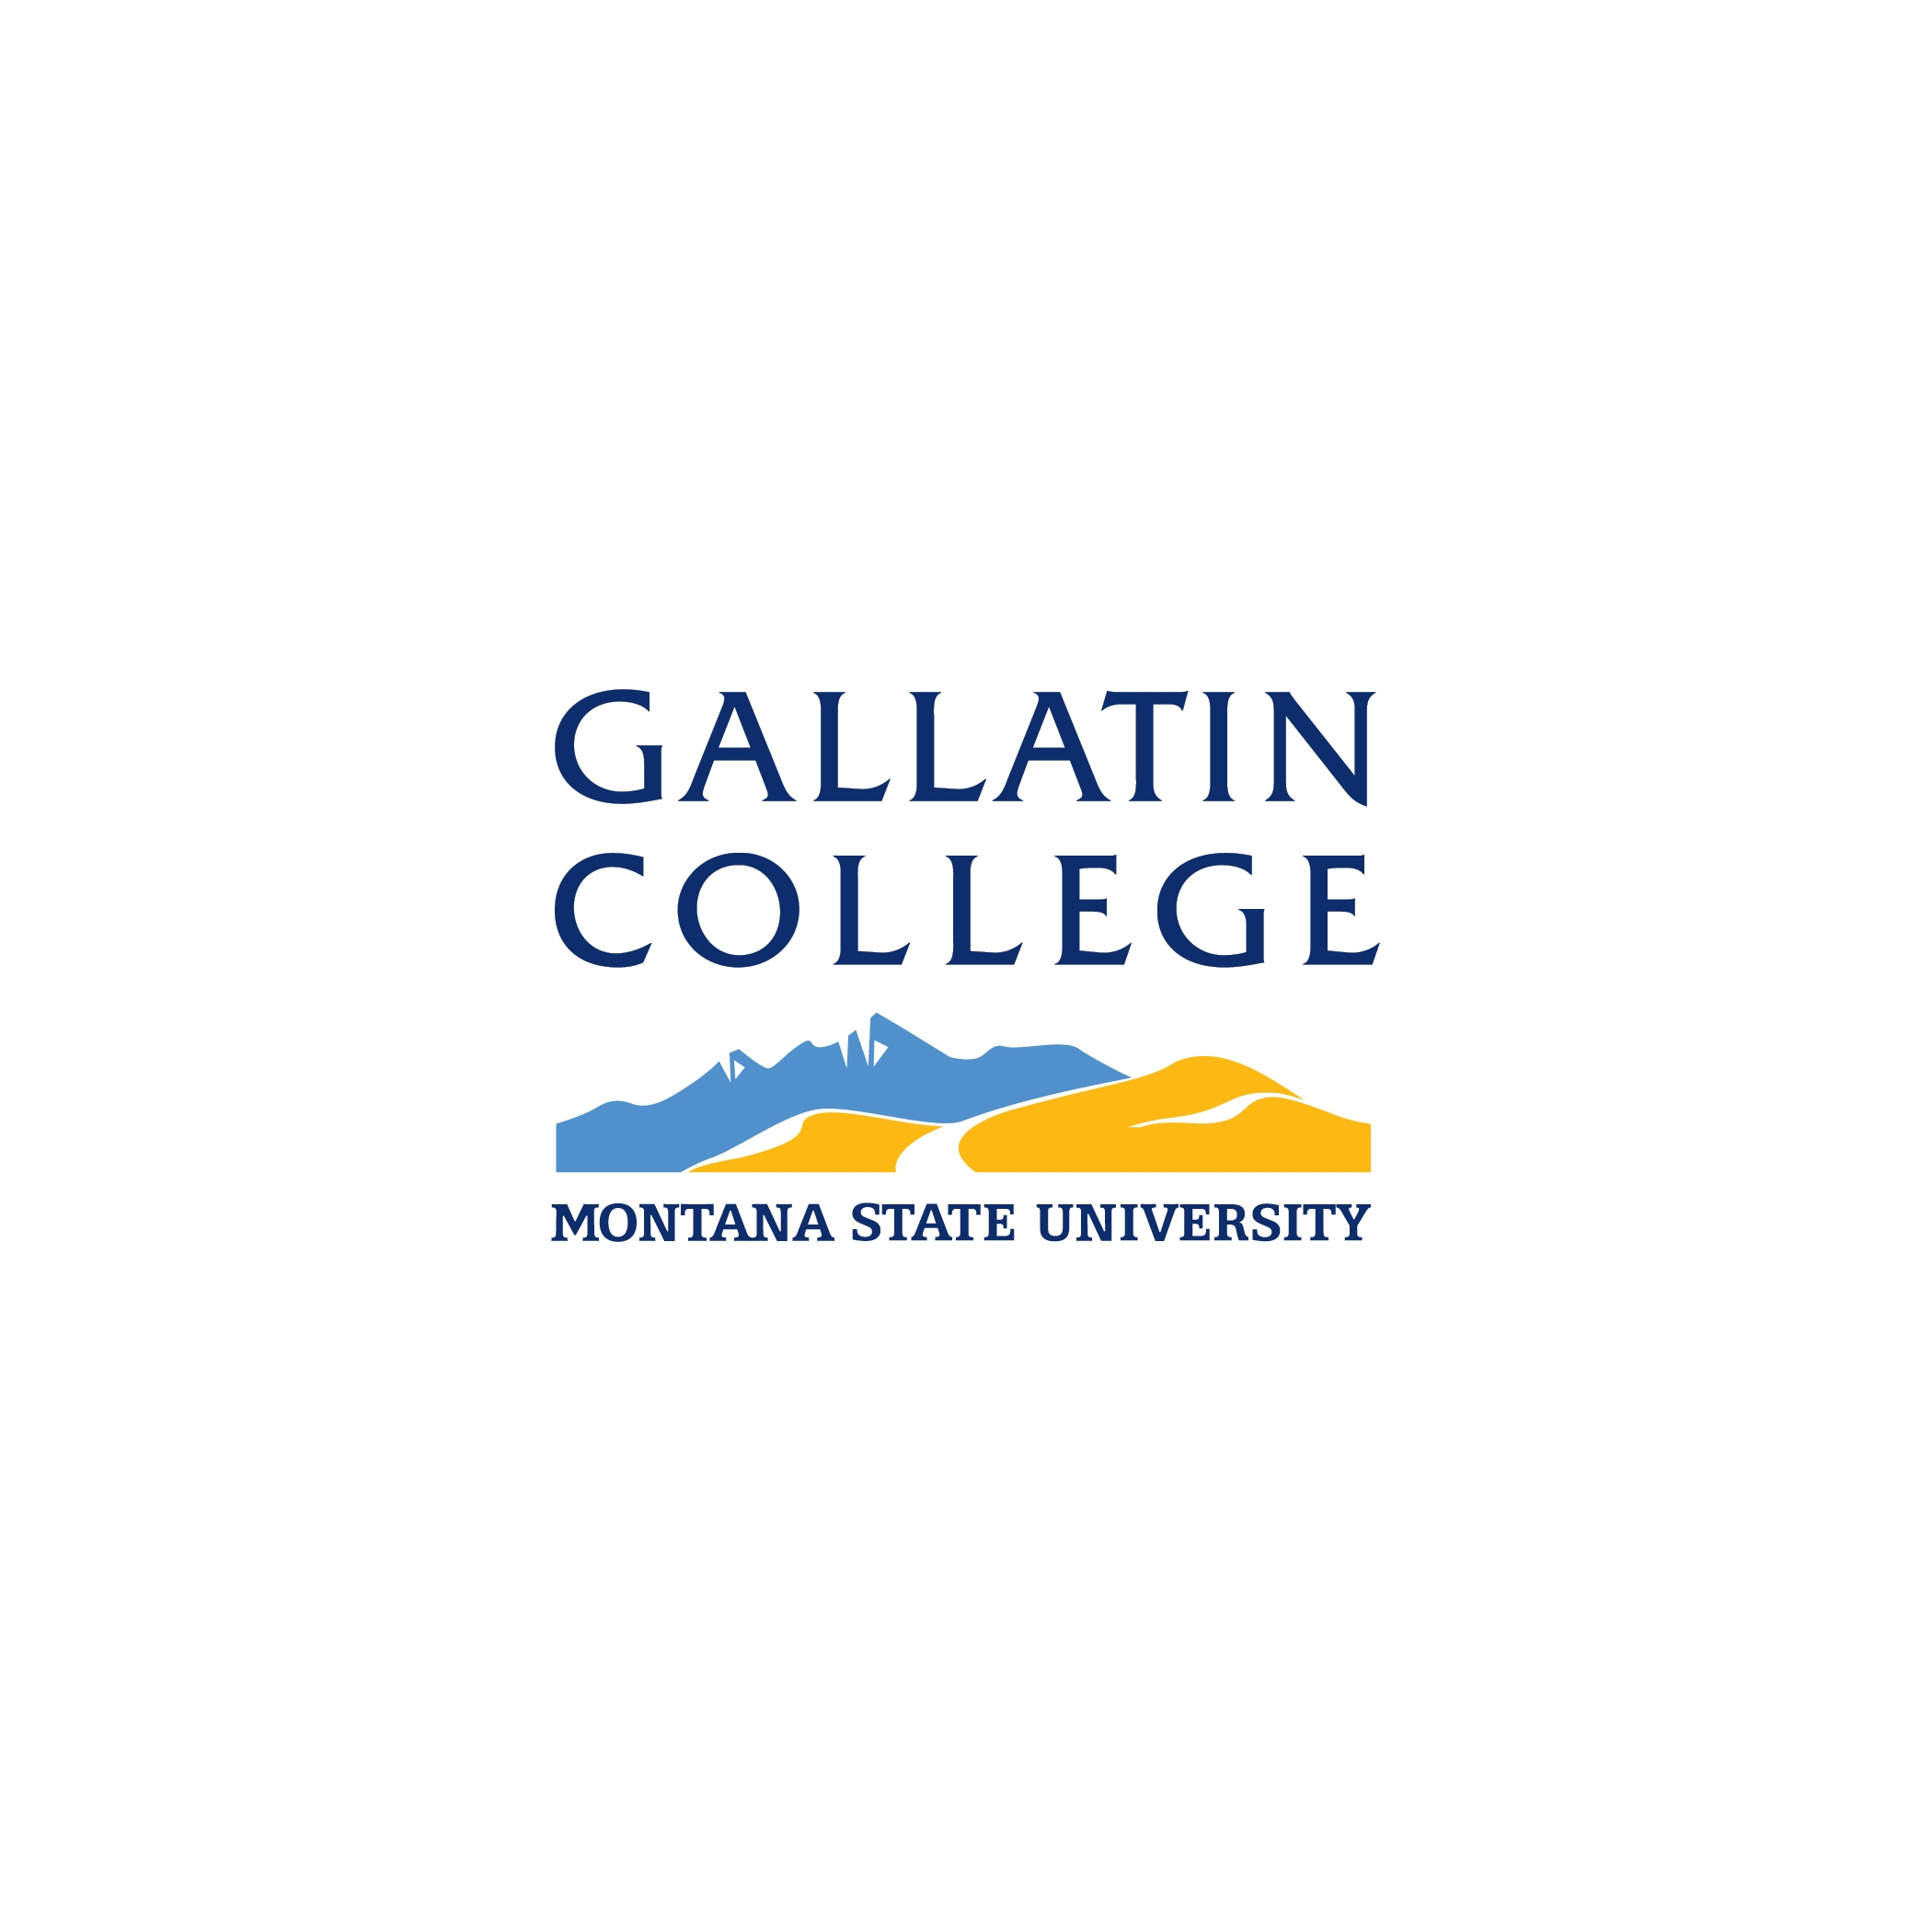 Gallatin College Virtual Celebration | Msu Event with Montana State University 2020 Fall Calendar